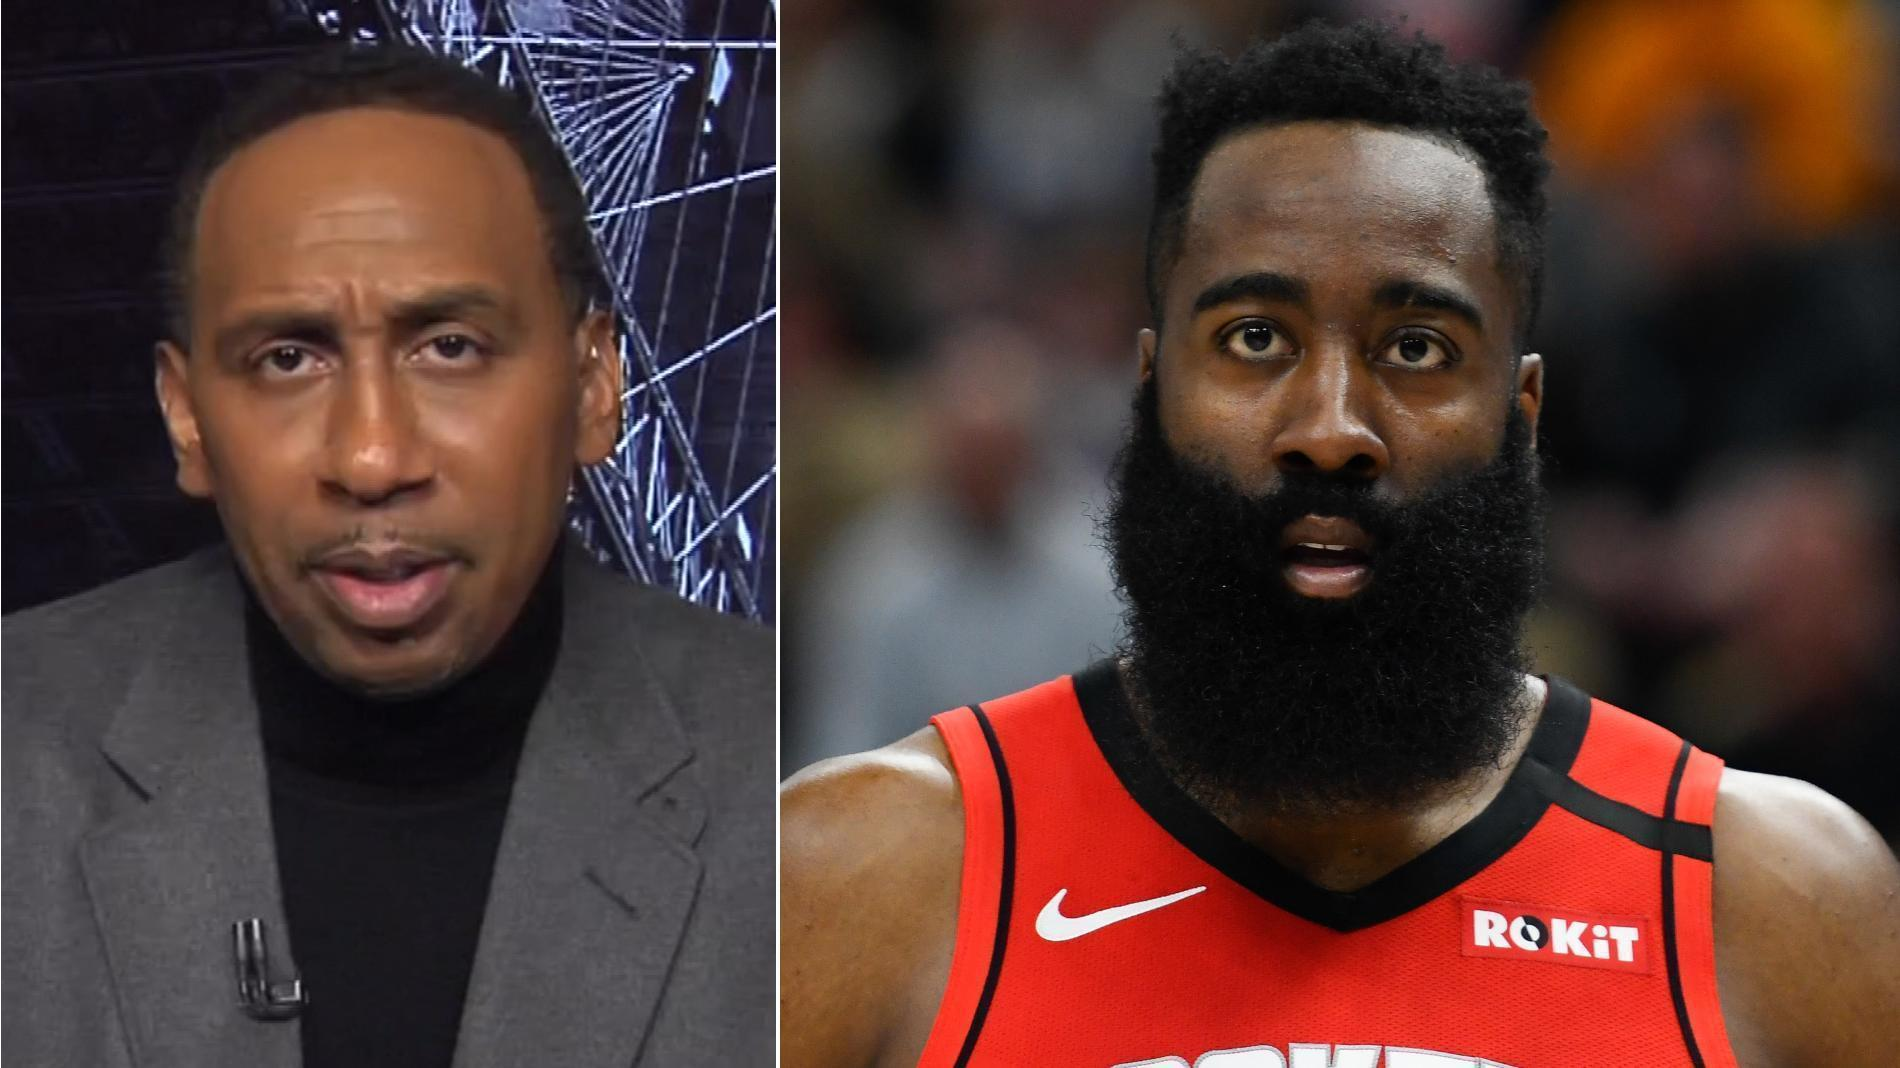 Harden has words for Giannis ... but were they justified?